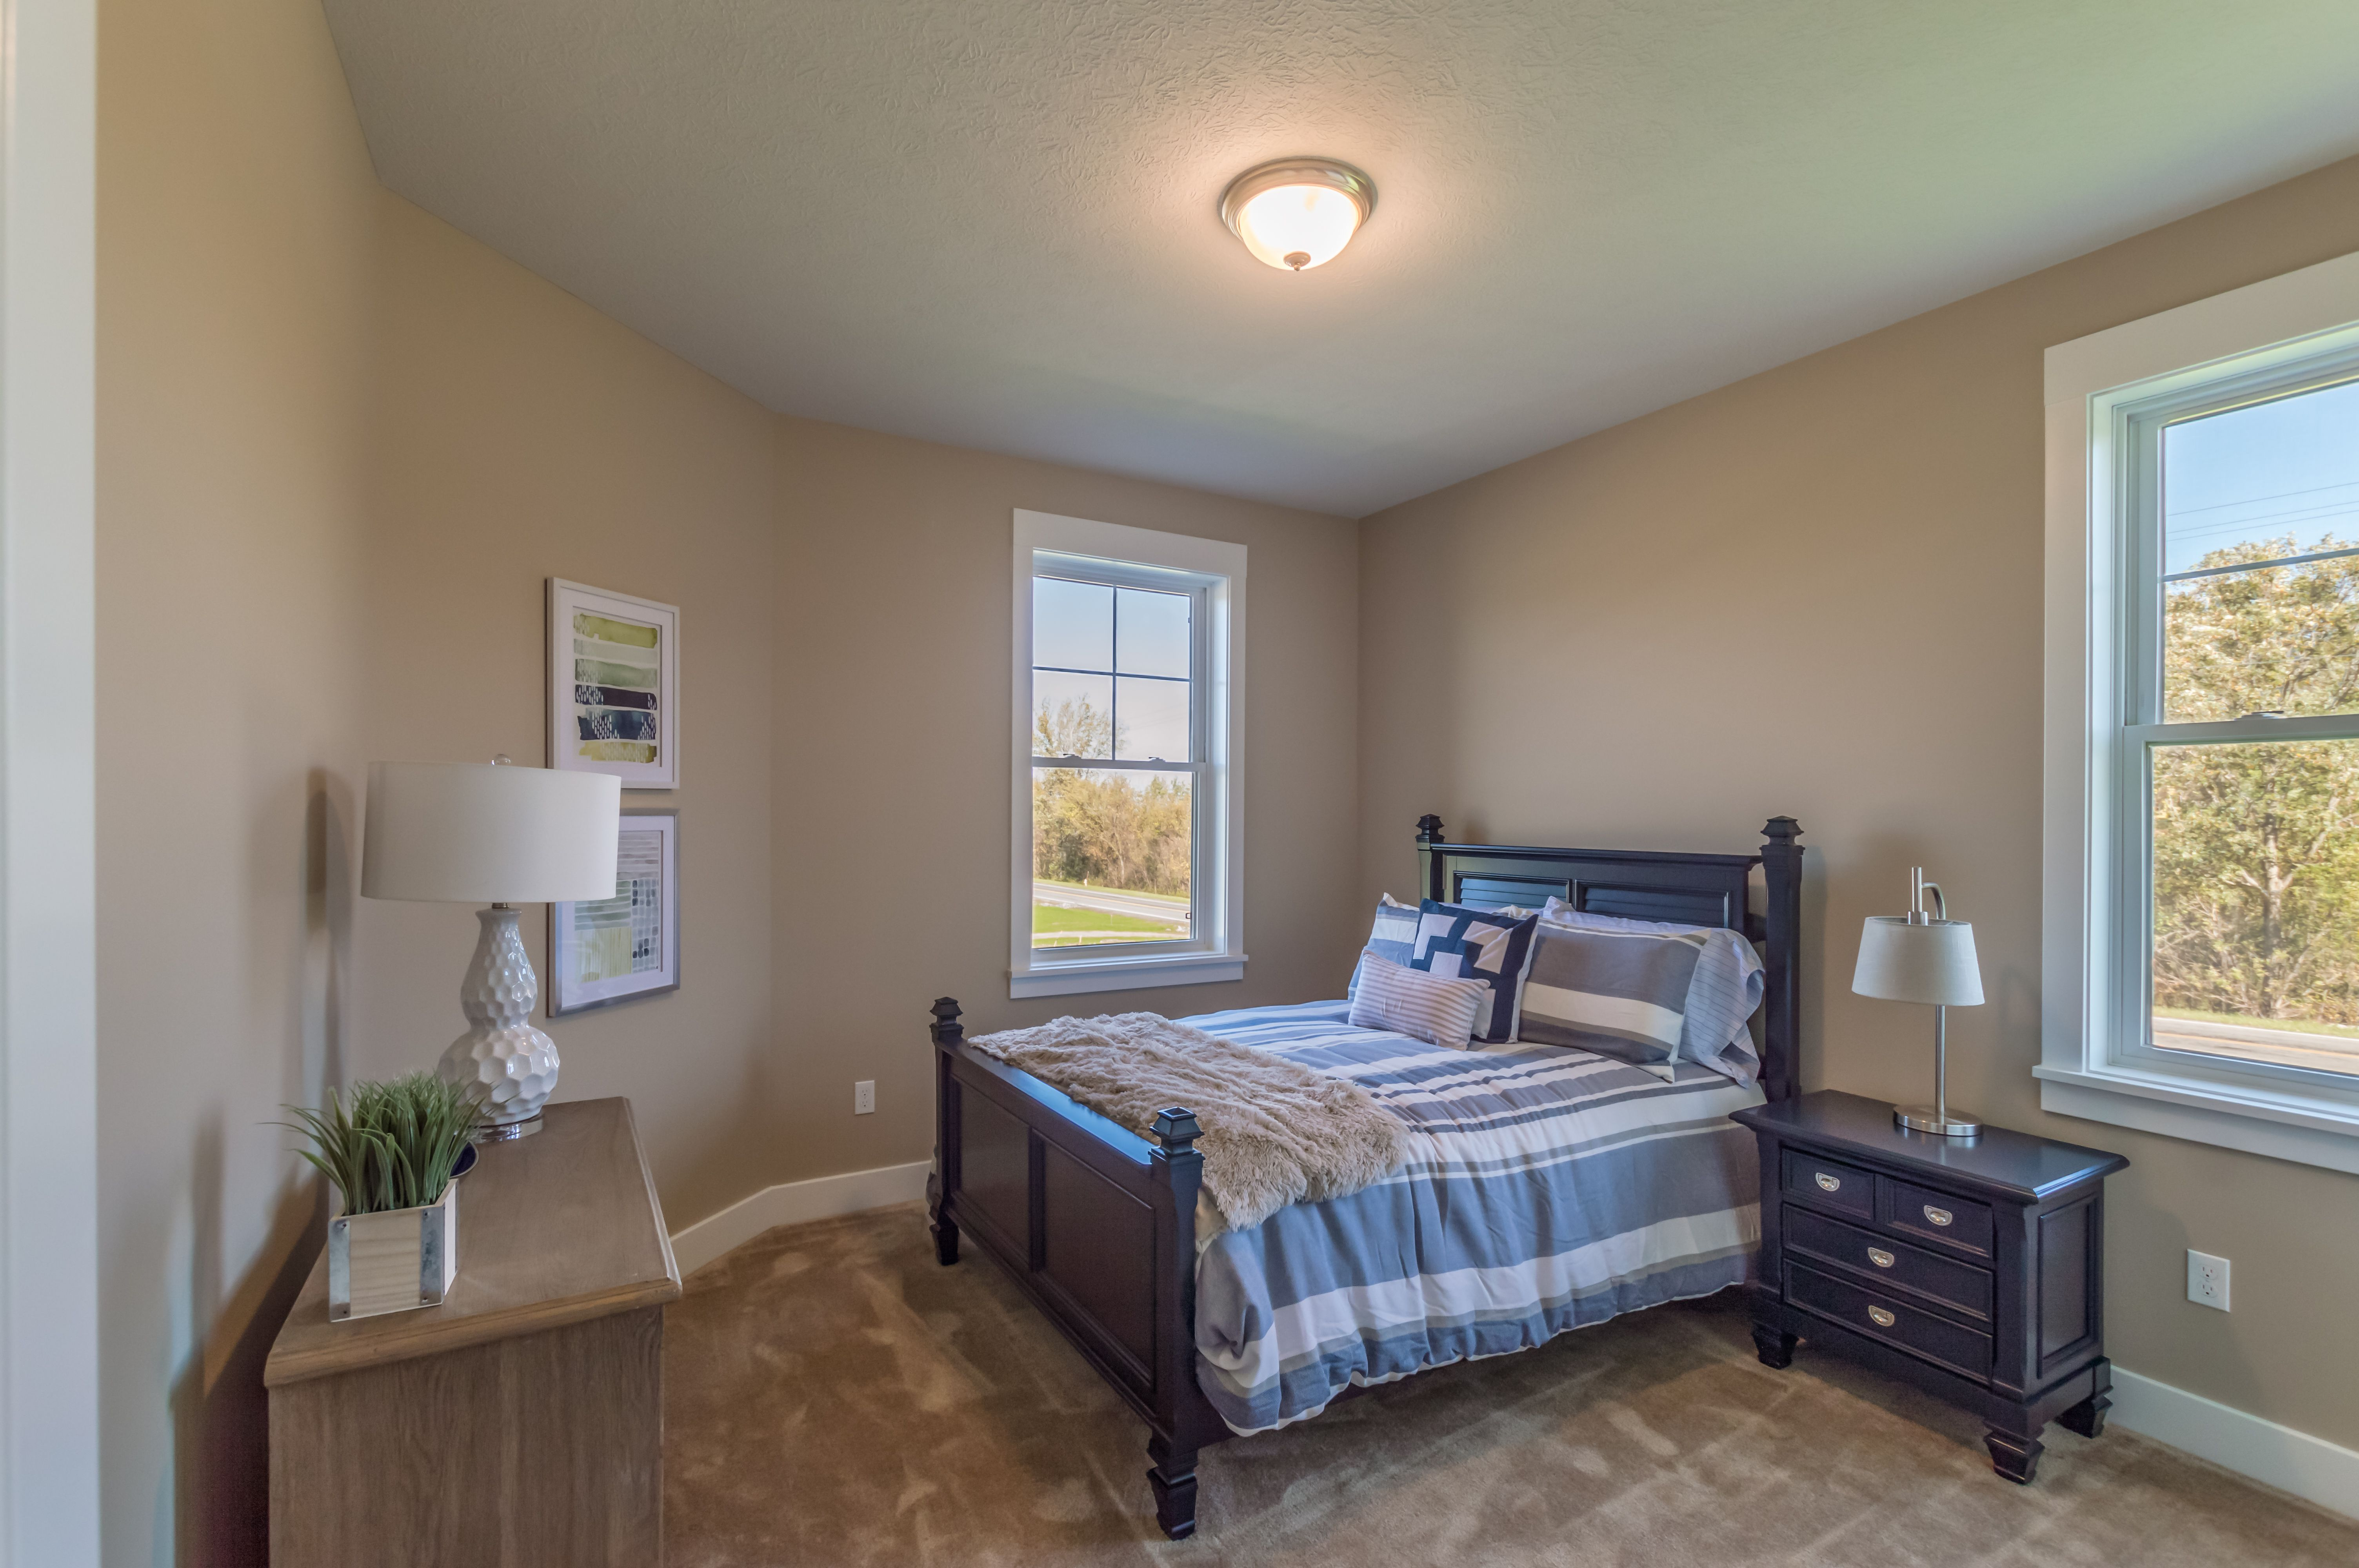 Bedroom featured in The Woodbury By Riedman Homes in Rochester, NY